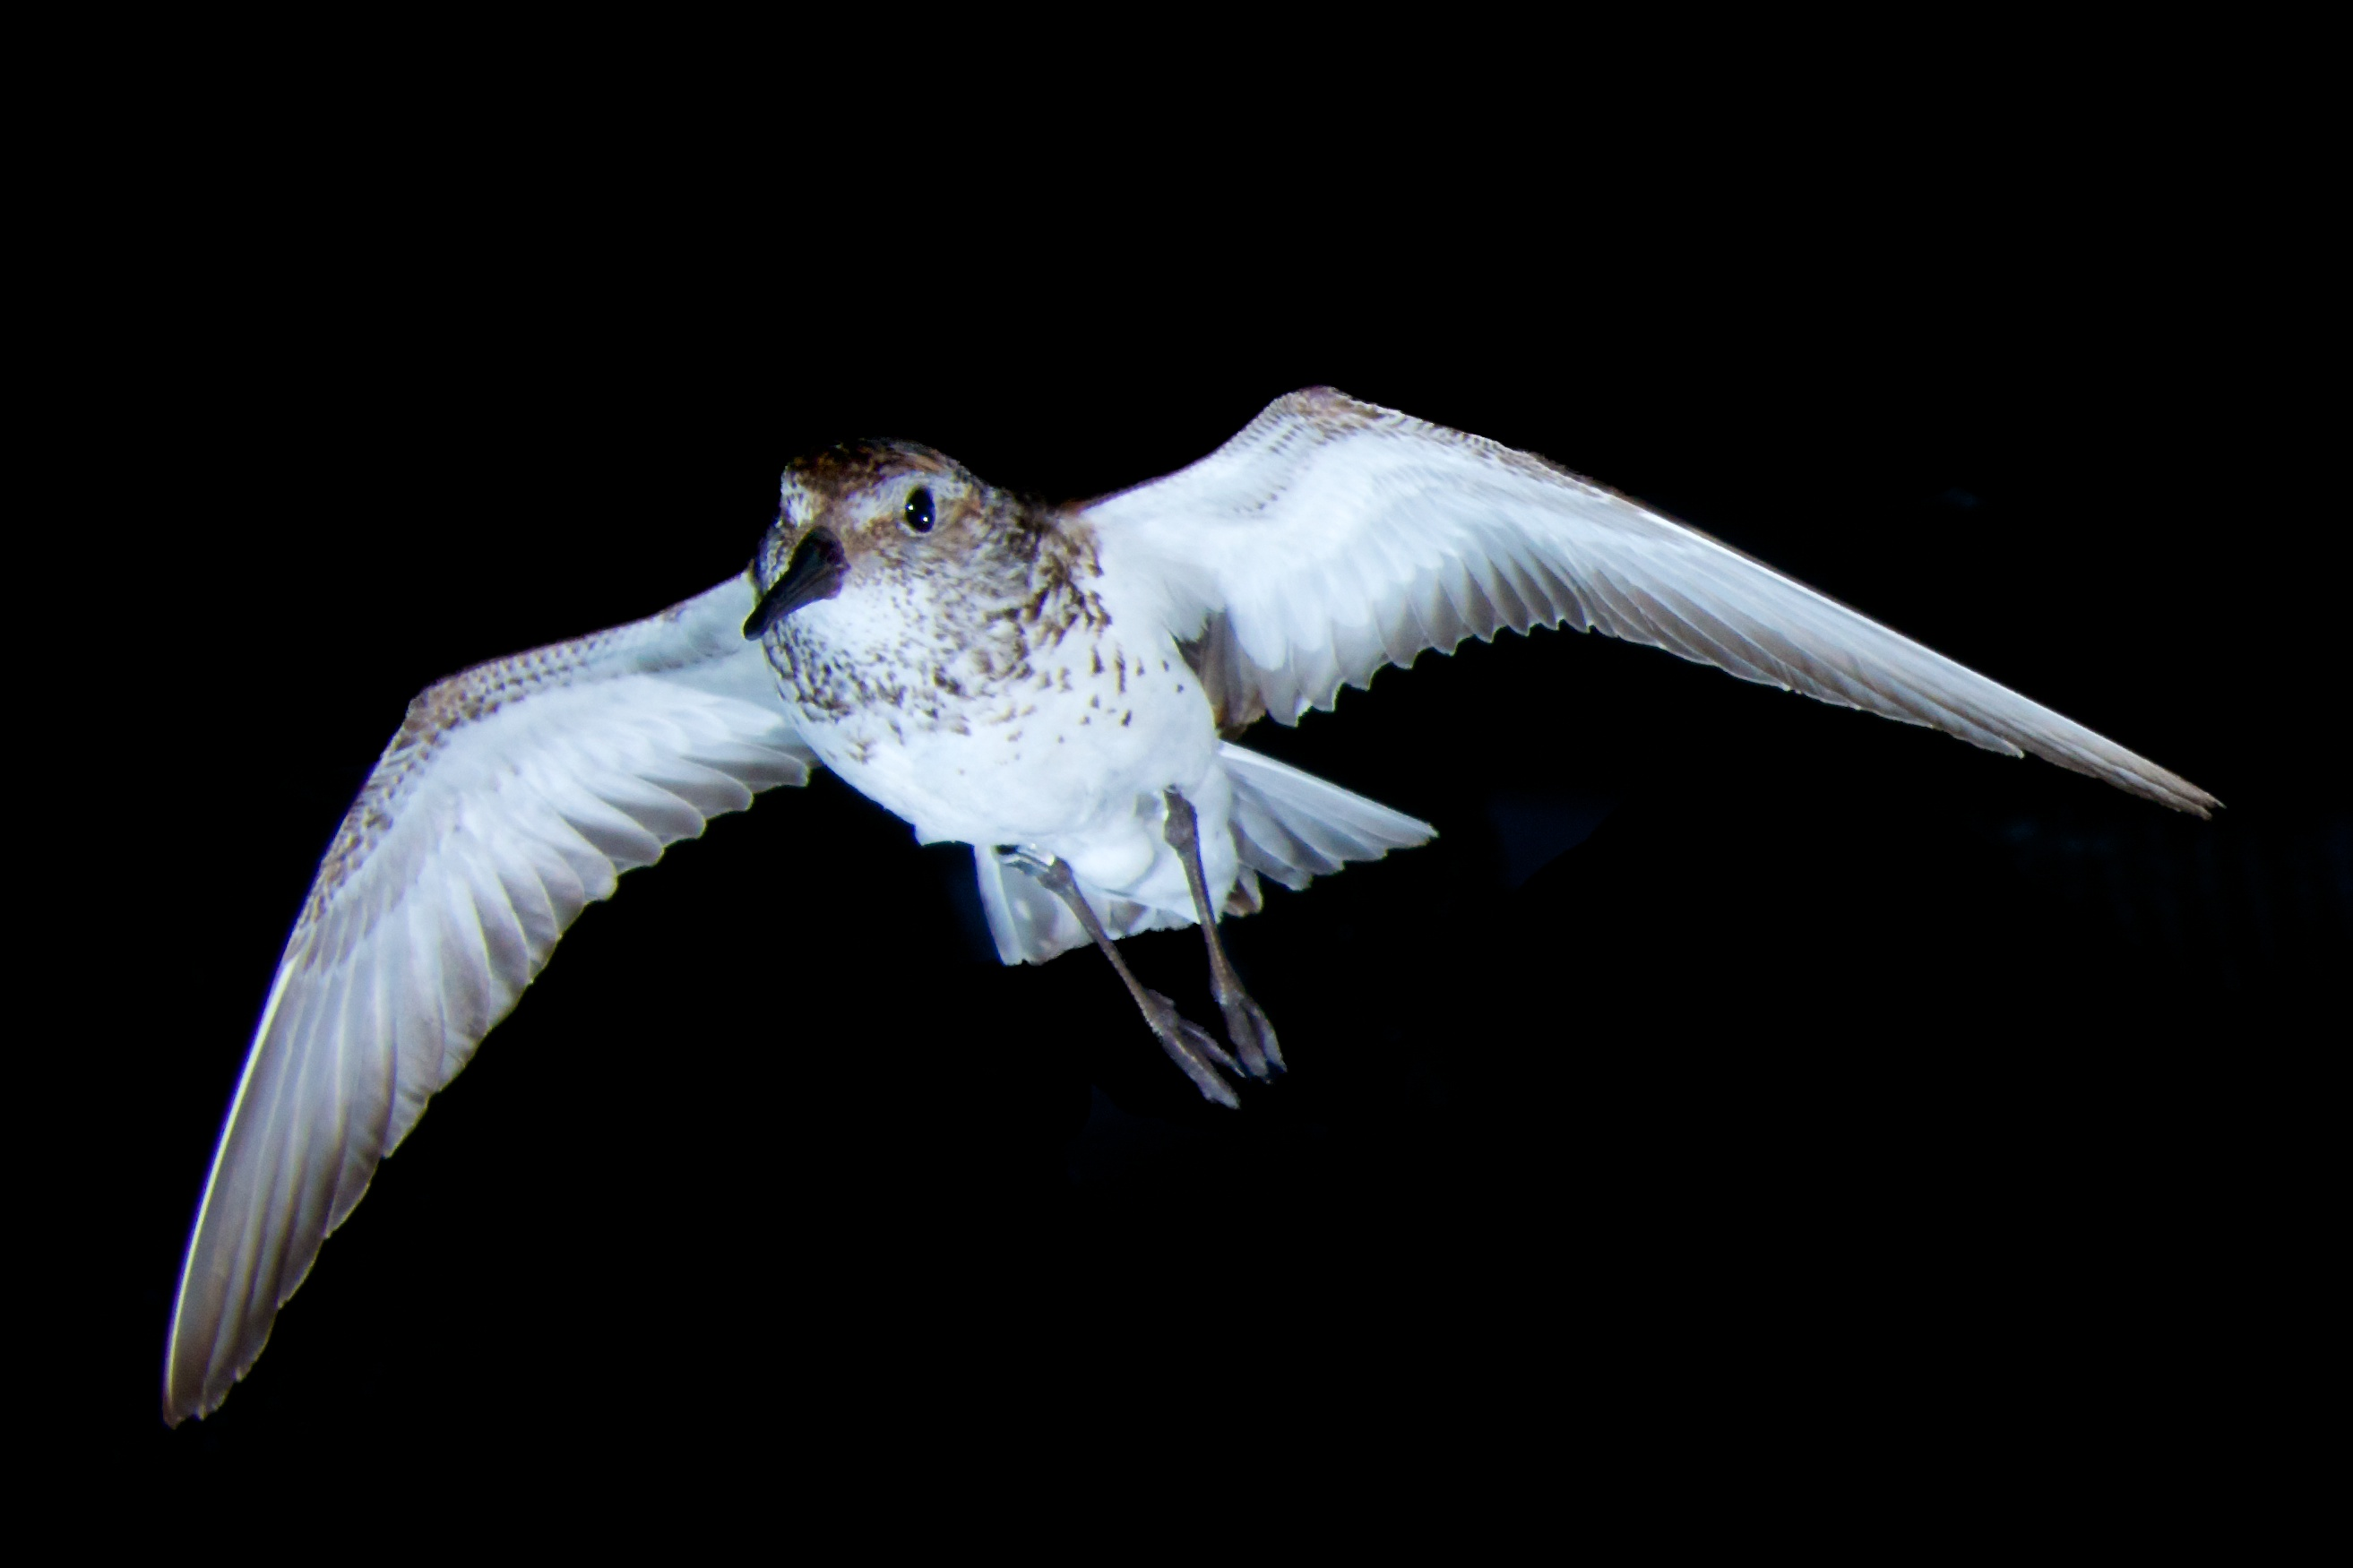 A western sandpiper flying in the AFAR wind tunnel. Photo credit: B. Fenton.